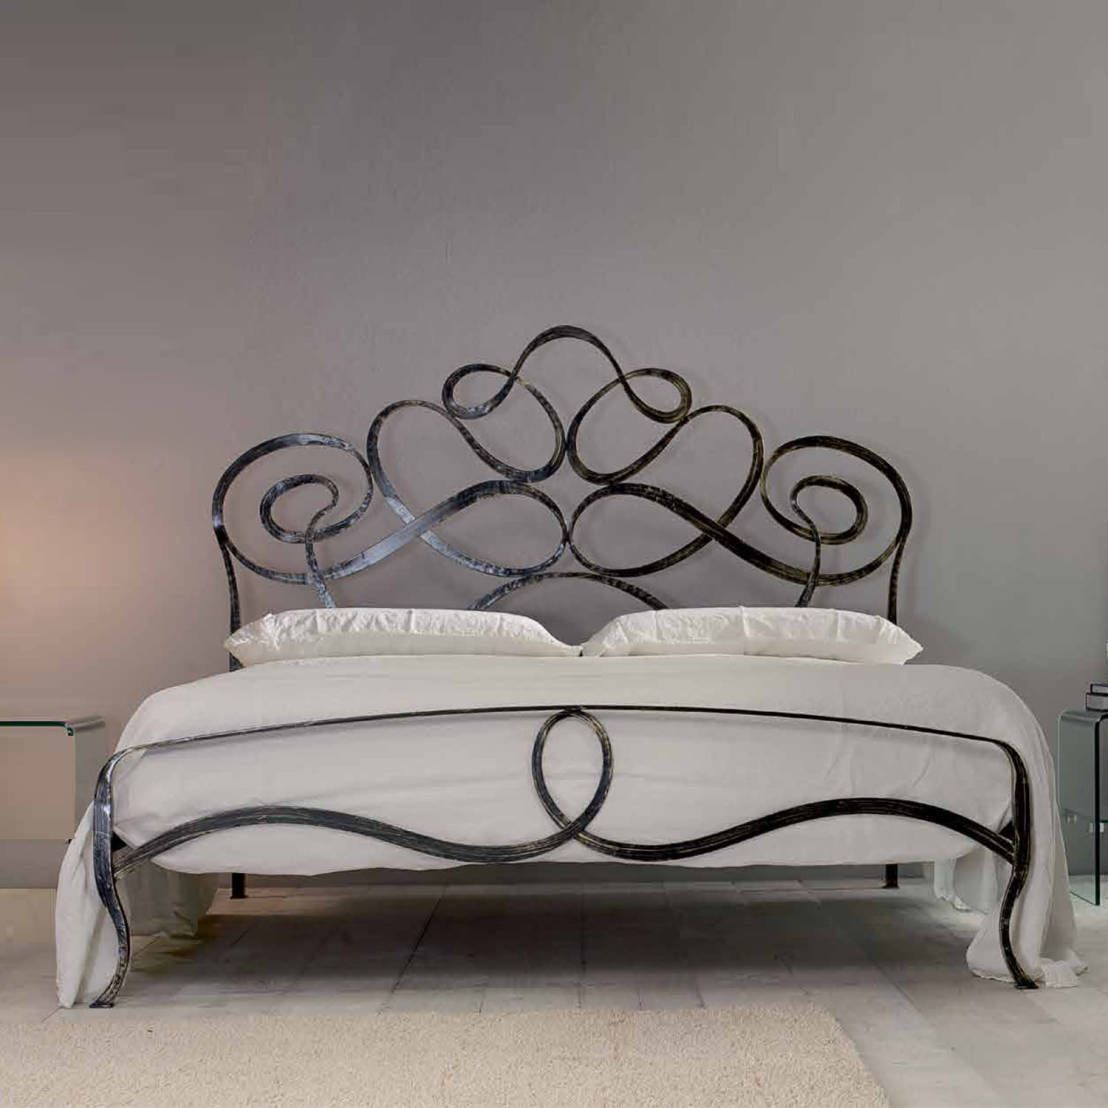 7 Amazing Iron Decoration Ideas With Images Wrought Iron Bed